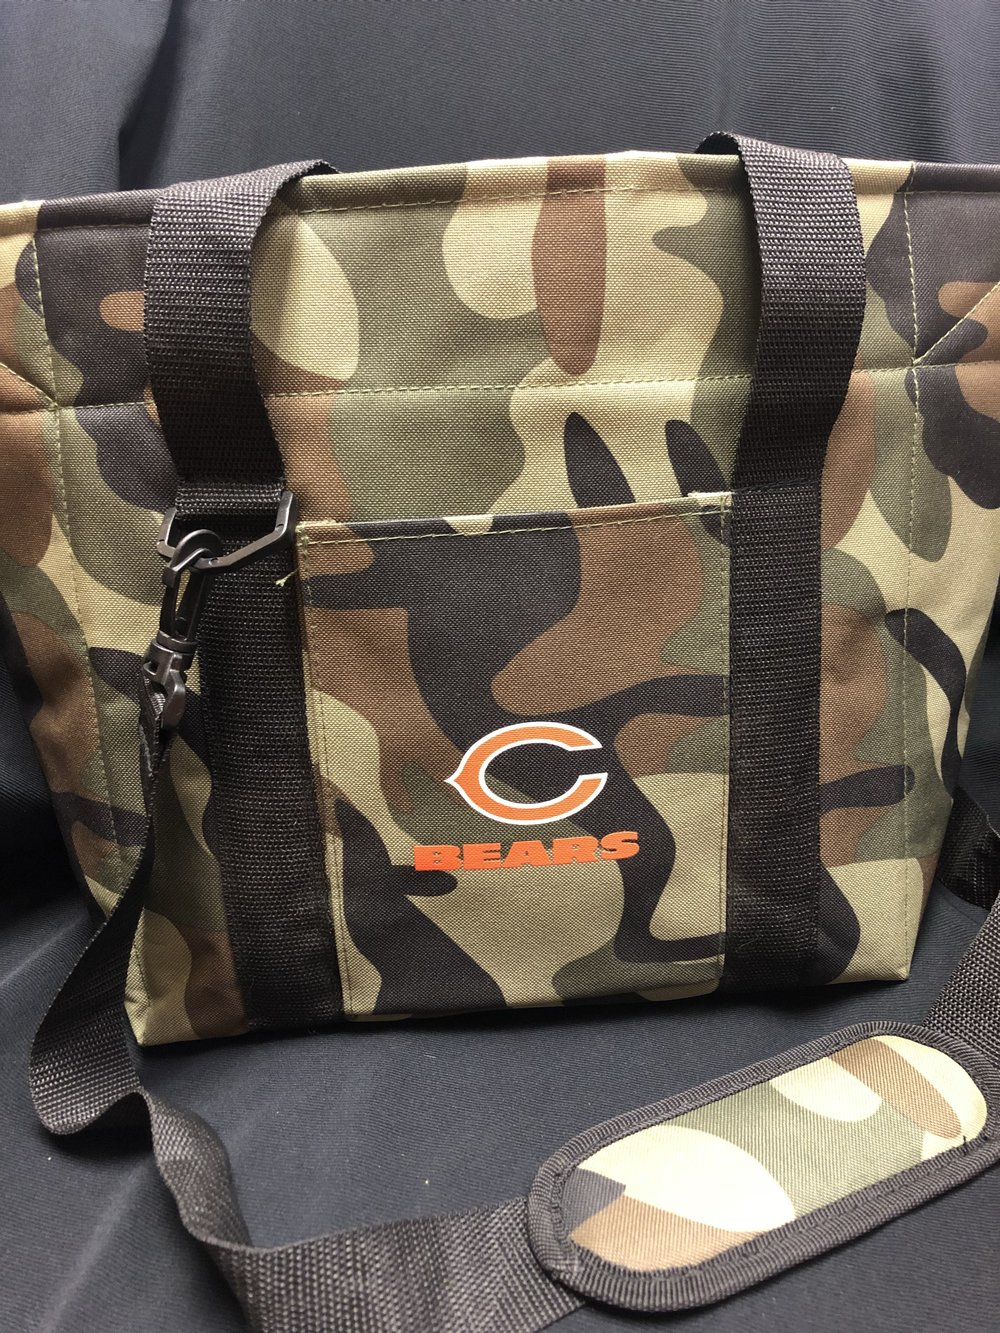 Chicago bears lunch box - $19.99